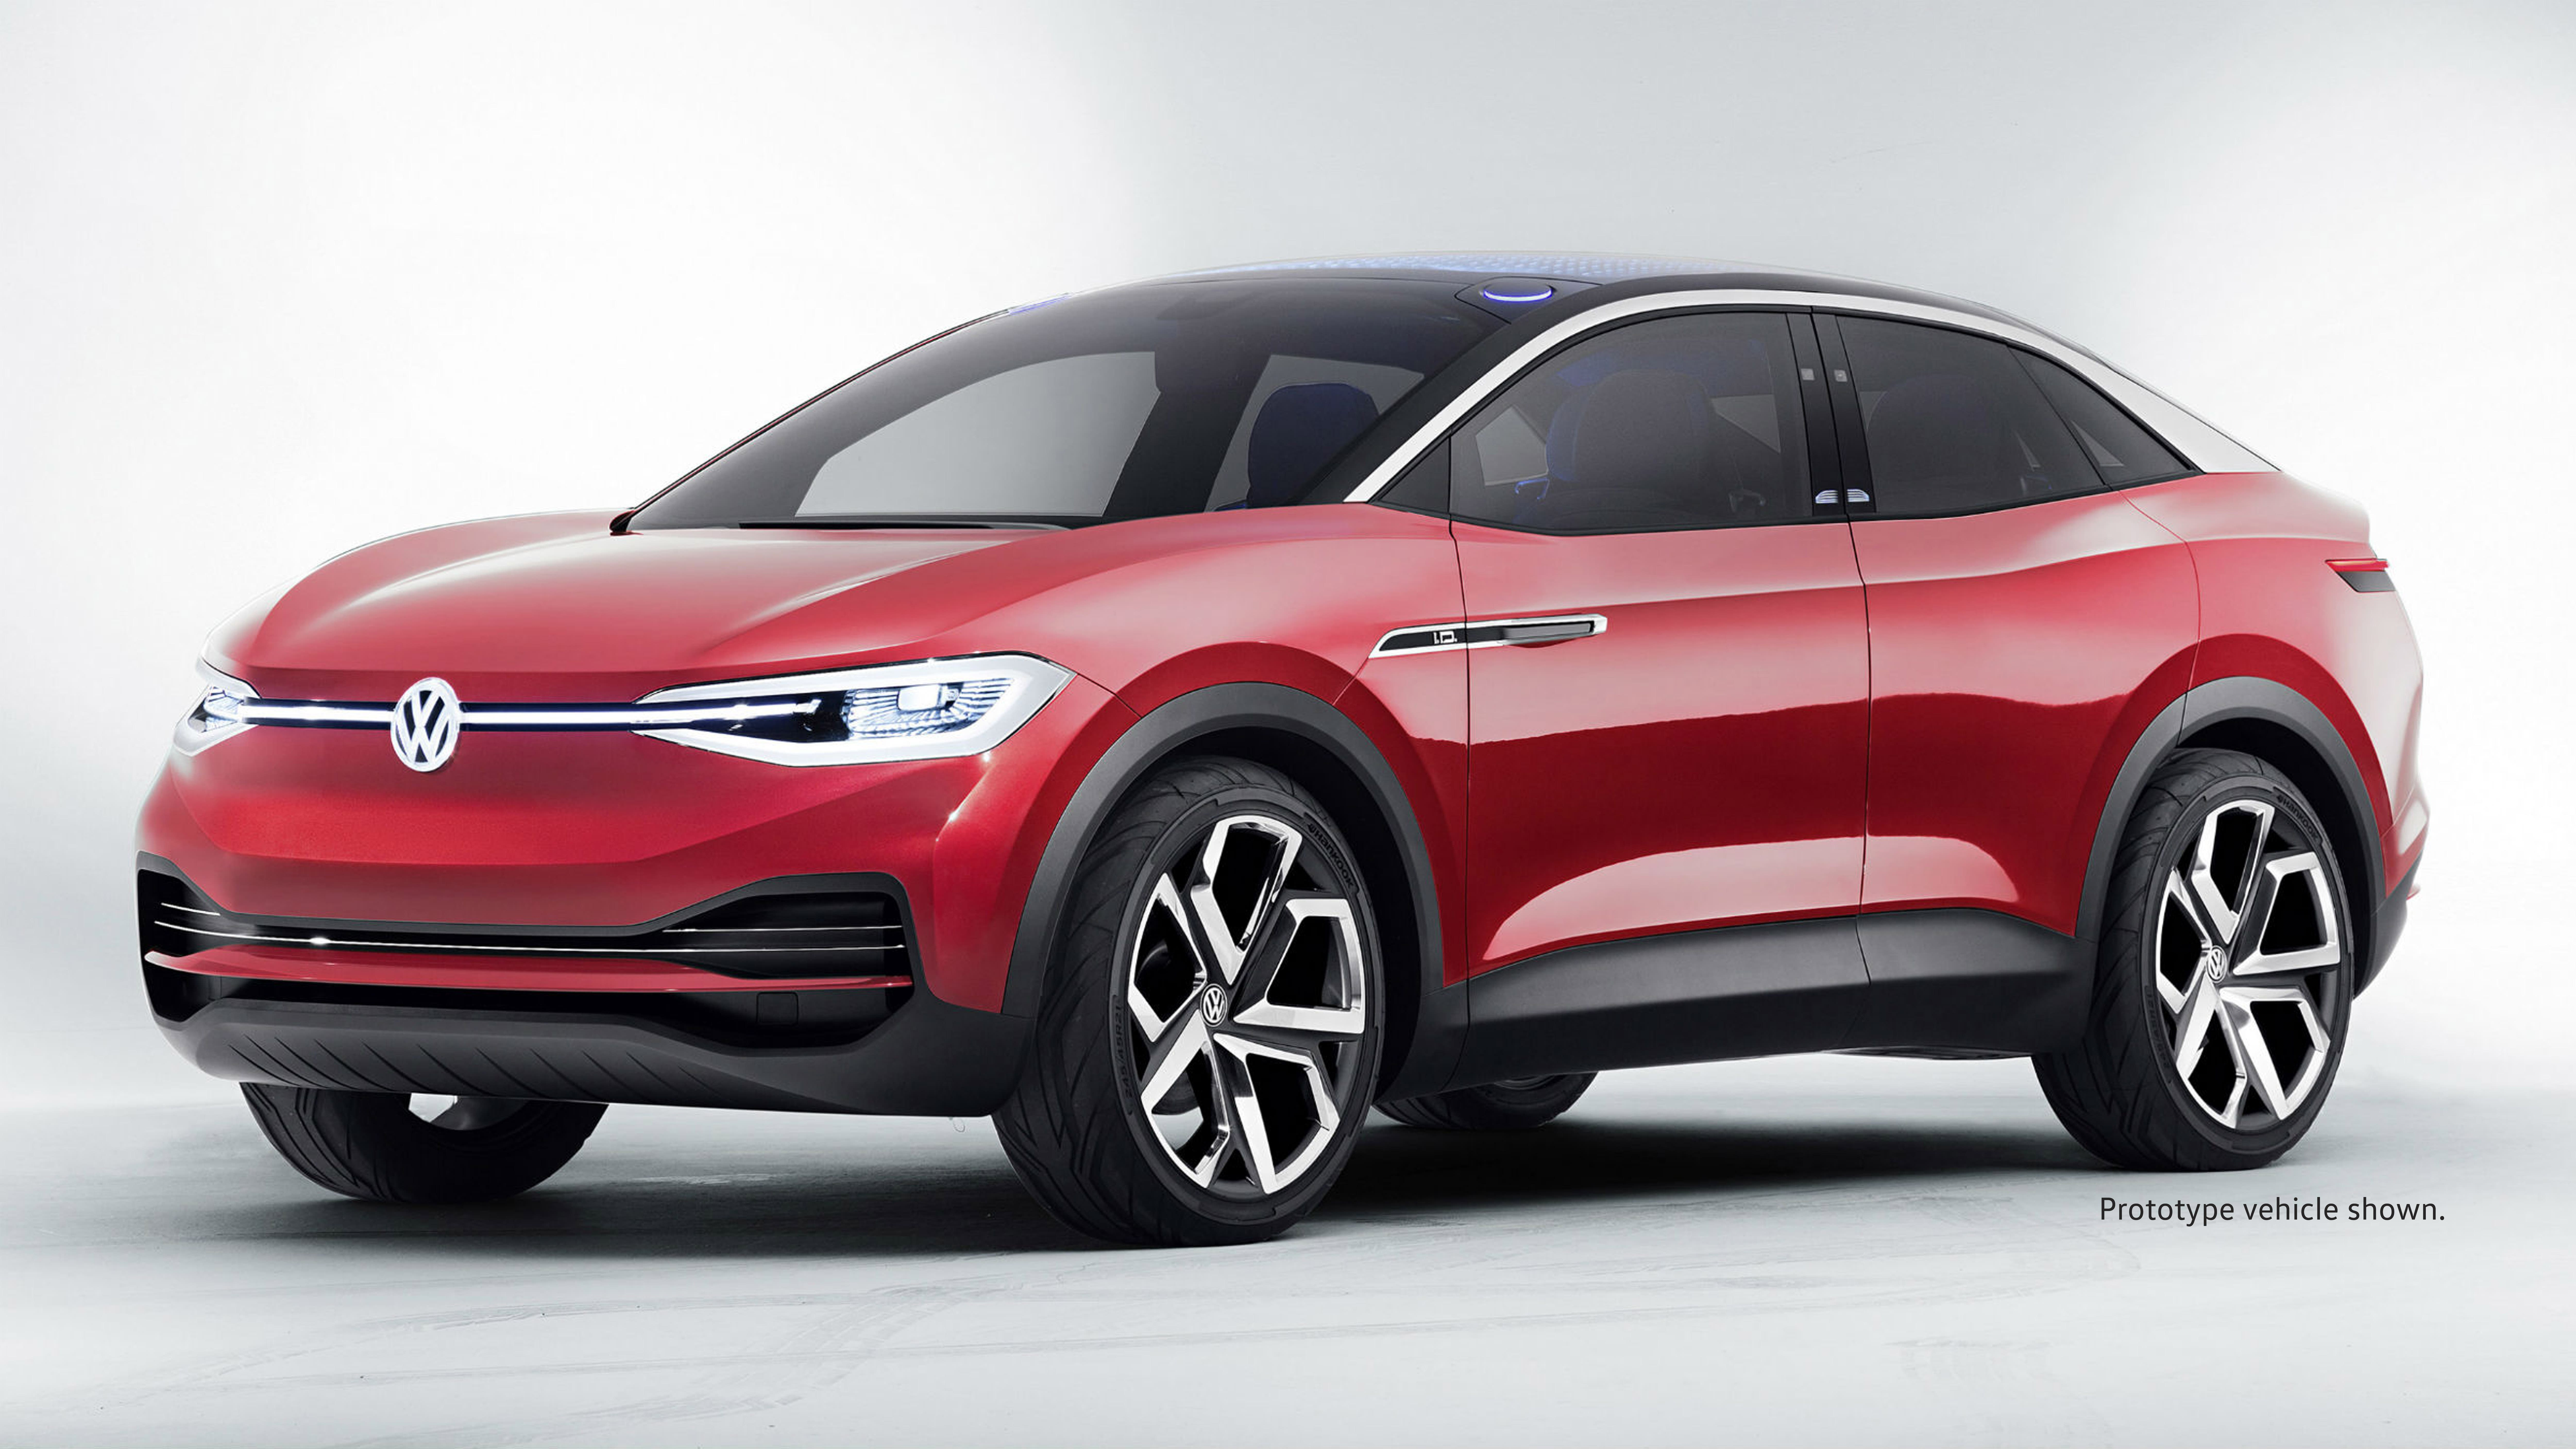 The Volkswagen ID Crozz Isn't Here Yet, But The Marketing